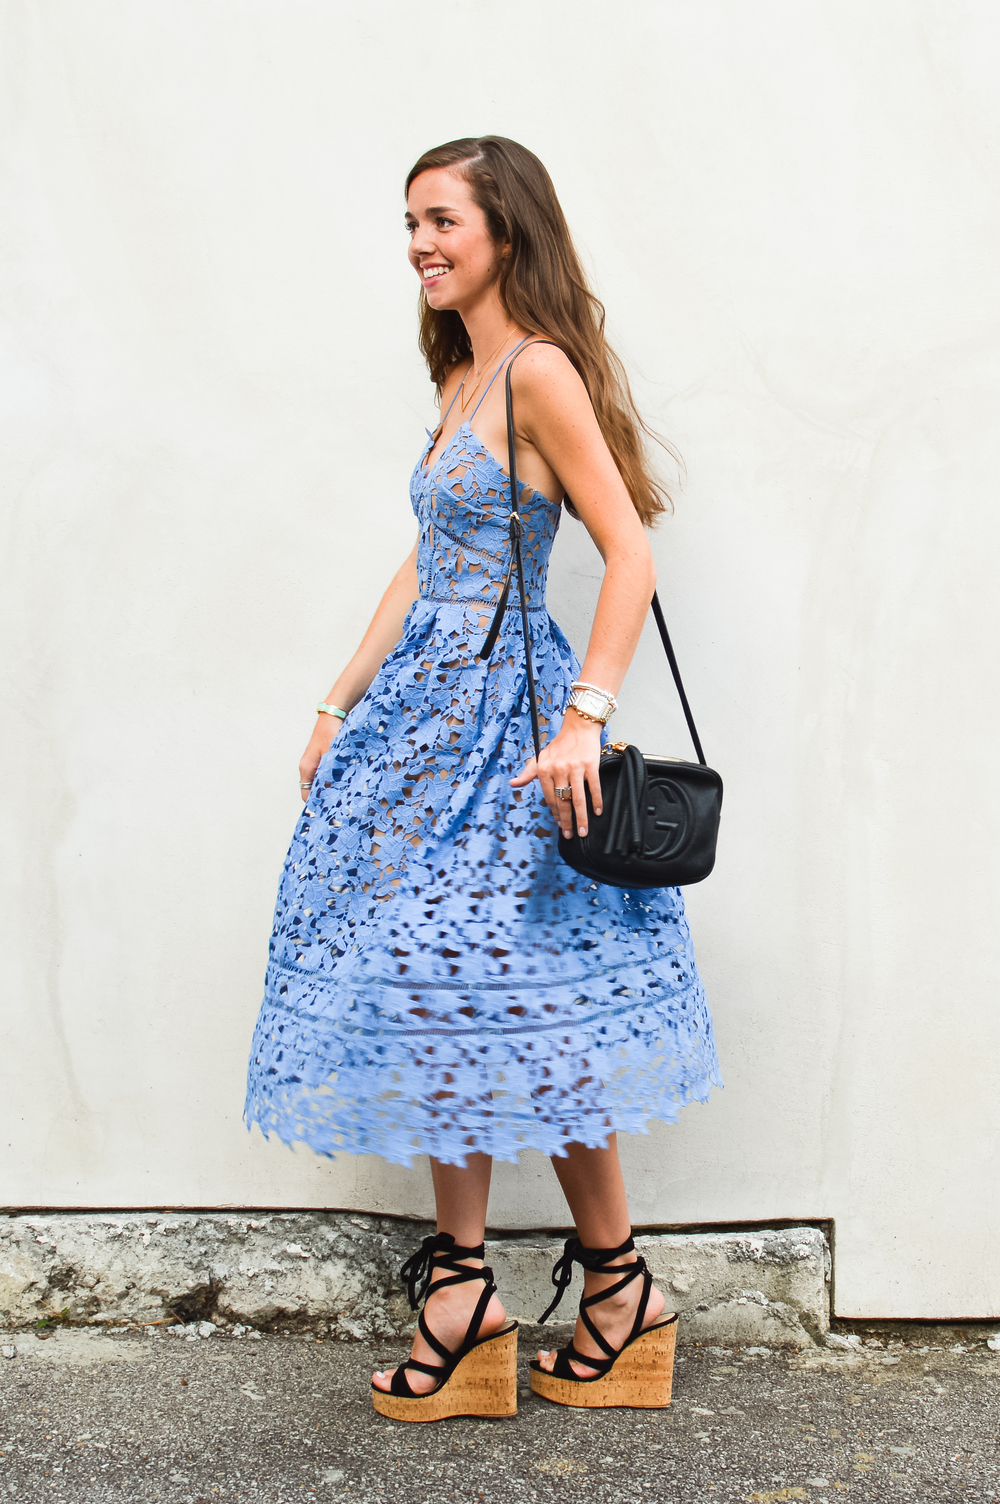 lcb_style_fashion_blogger_selfportrait_dress (39 of 48).jpg